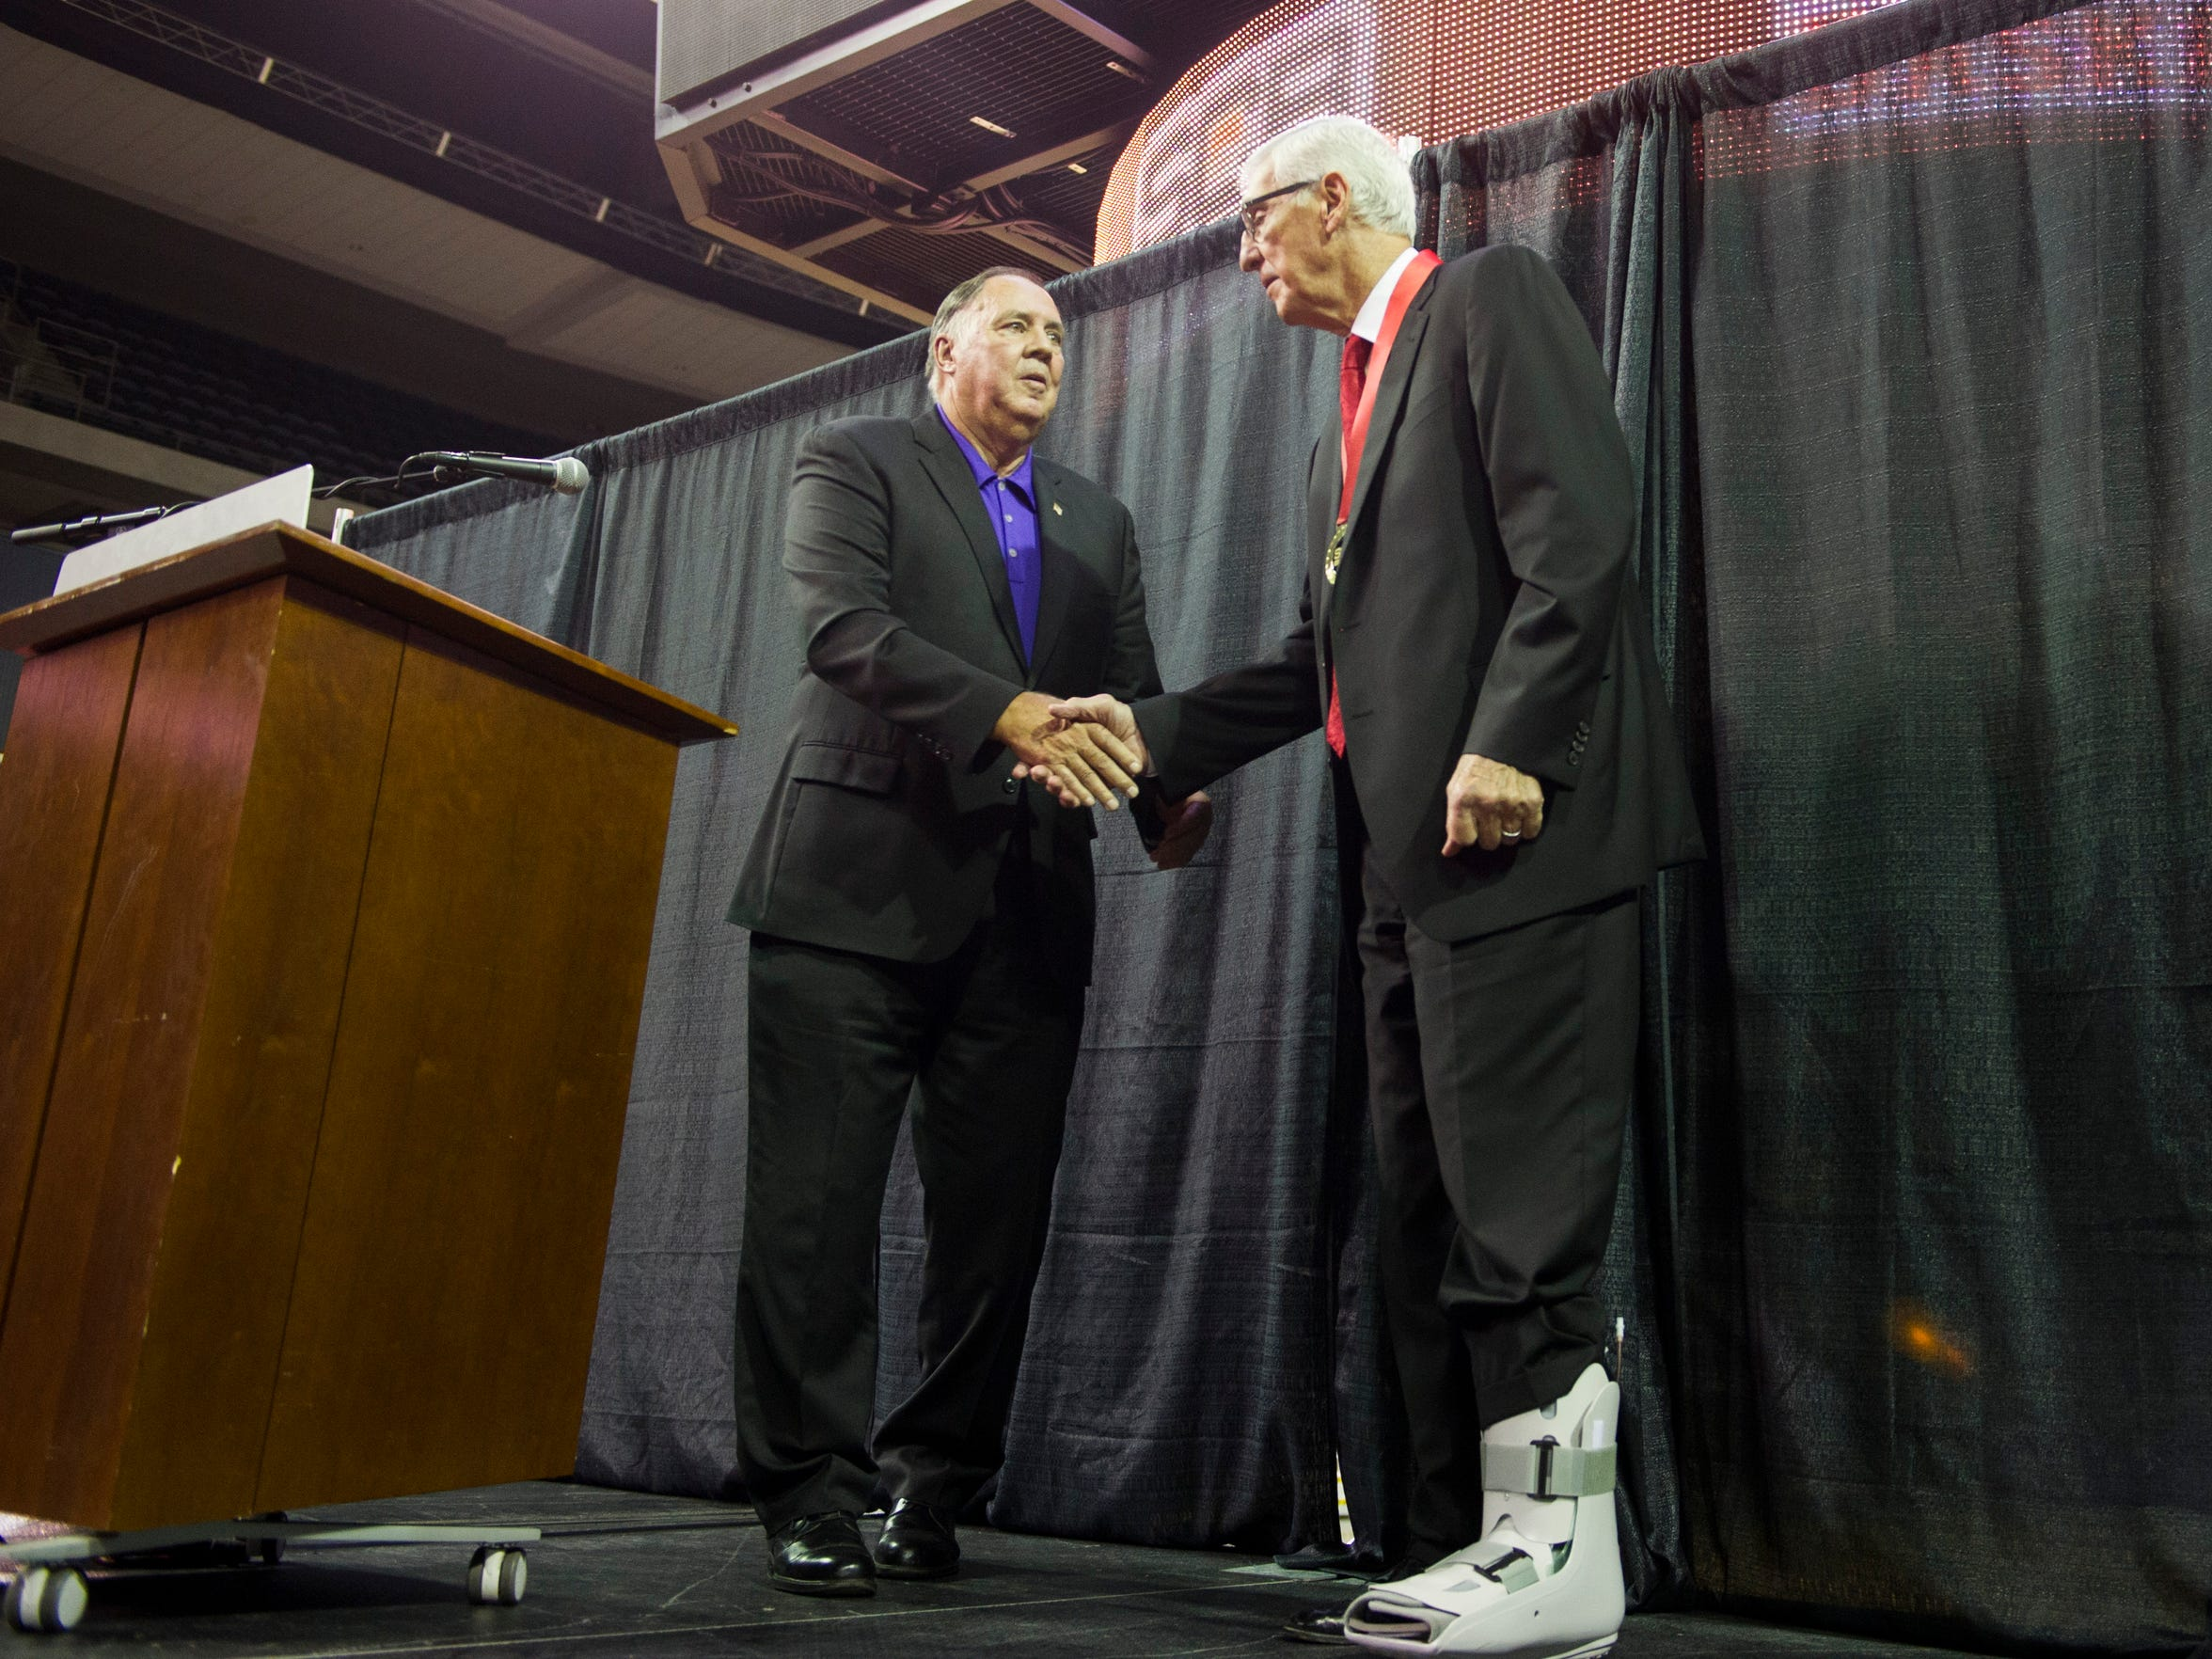 Wayne Boultinghouse, congratulates Jerry Sloan as he